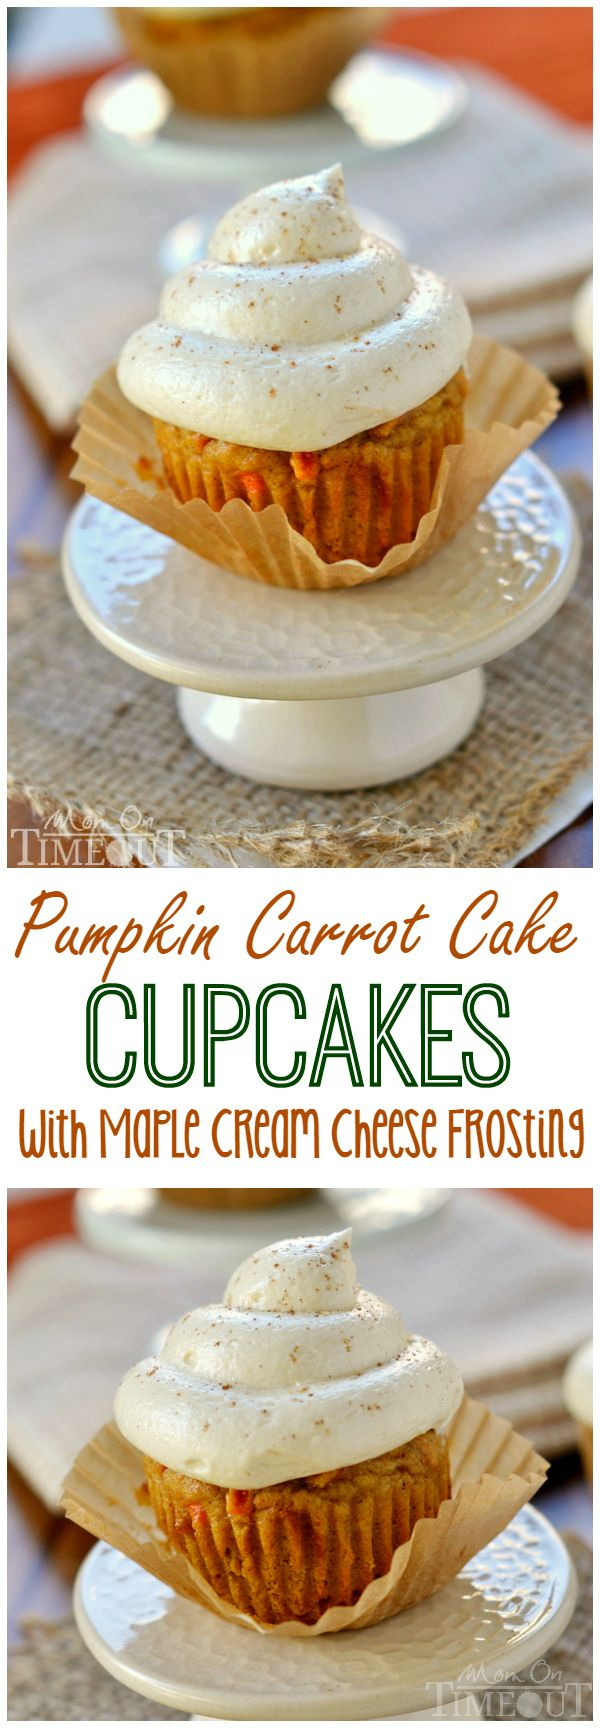 Pumpkin Carrot Cake Cupcakes with Maple Cream Cheese Frosting. Loaded with pumpkin, maple syrup, and pumpkin pie spice for the greatest flavor combination in history.  Pumpkin Carrot Cake Cupcakes with Maple Cream Cheese Frosting – the cupcakes you need to make this Fall!